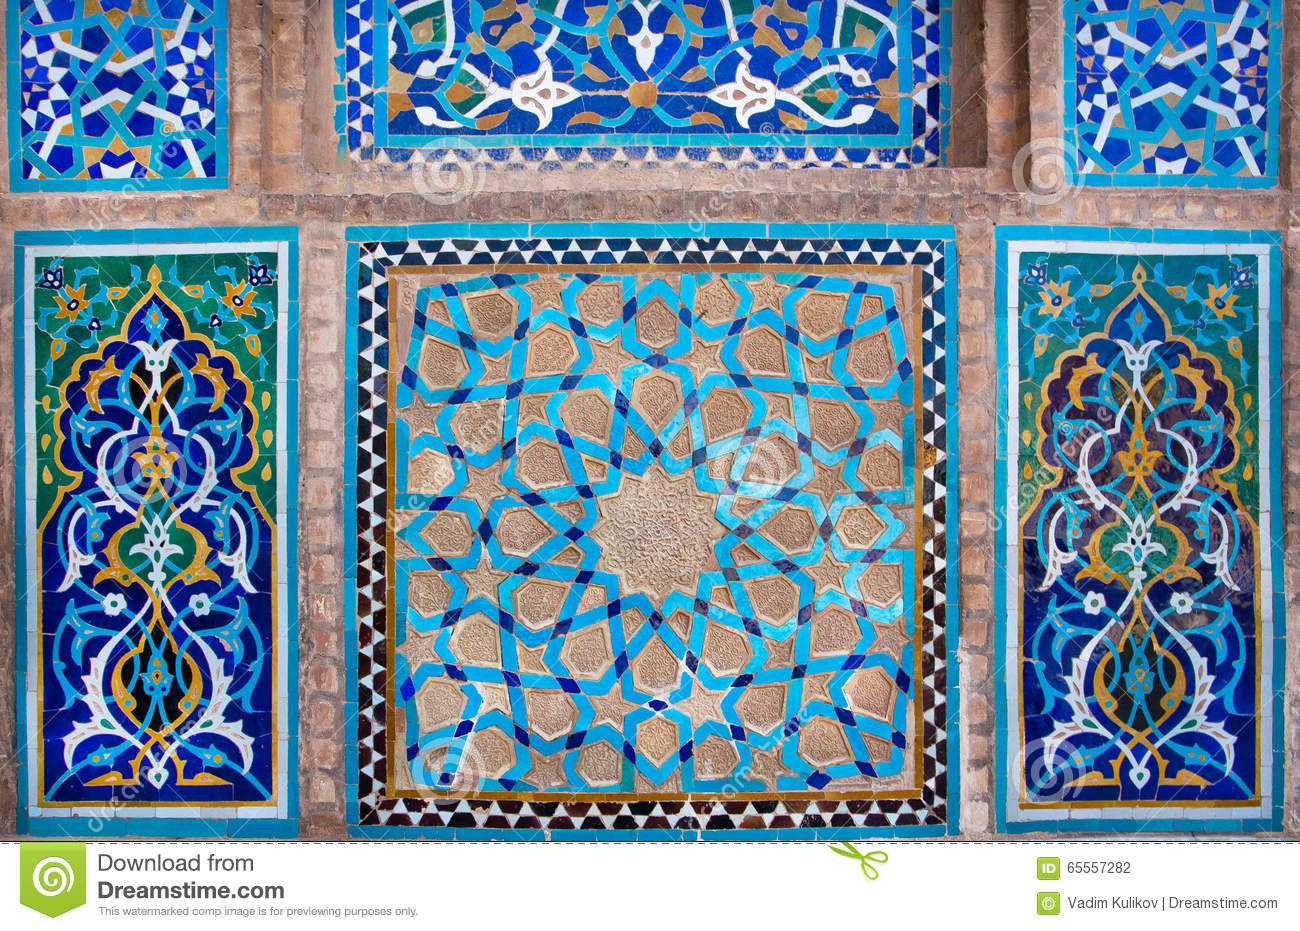 Amazing 12X12 Floor Tile Patterns Small 12X24 Ceramic Floor Tile Rectangular 12X24 Slate Tile Flooring 2 X 12 Ceramic Tile Young 2 X 8 Glass Subway Tile Green2X4 Ceiling Tiles Home Depot Antique Ceramic Tile   Columbialabels